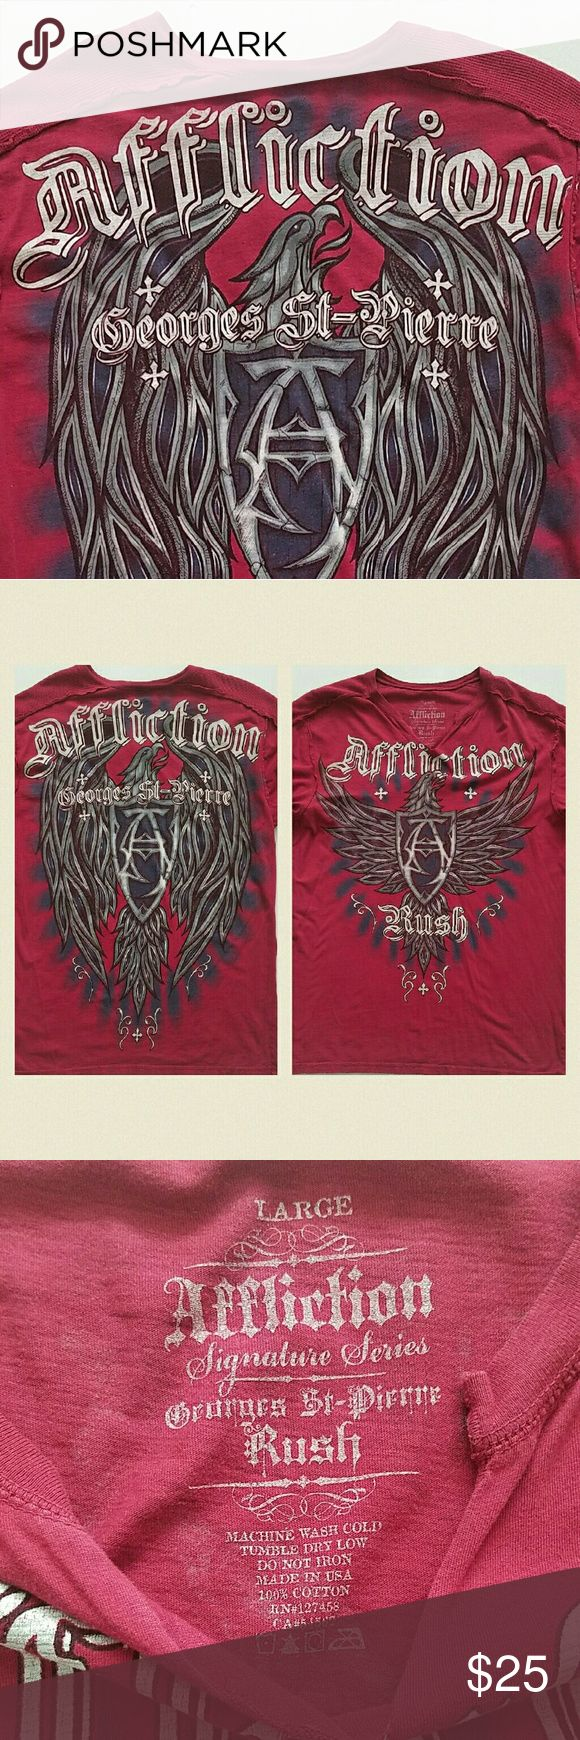 Affliction Rush GSP Tshirt Georges st pierre affliction shirt.  Good used condition, minor stitching came loose at bottom, shown in last pic. Affliction Shirts